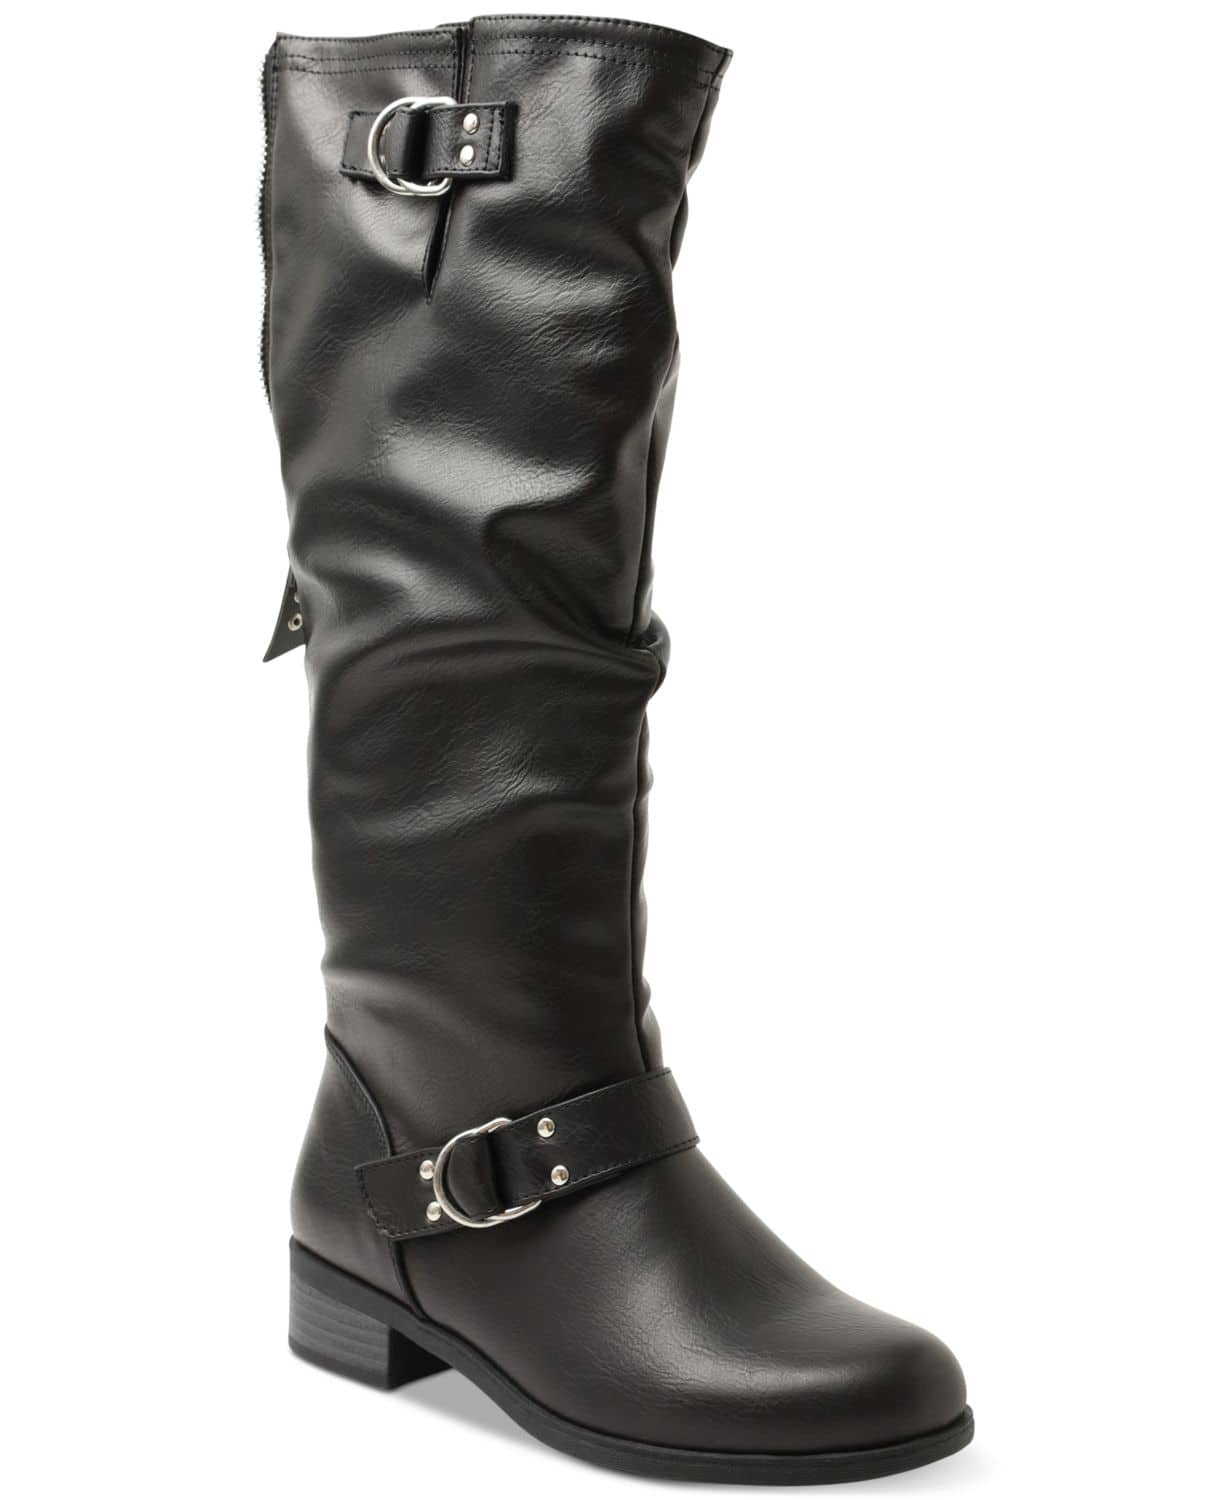 XOXO Minkler Riding Boots (3 Colors)  $15.96